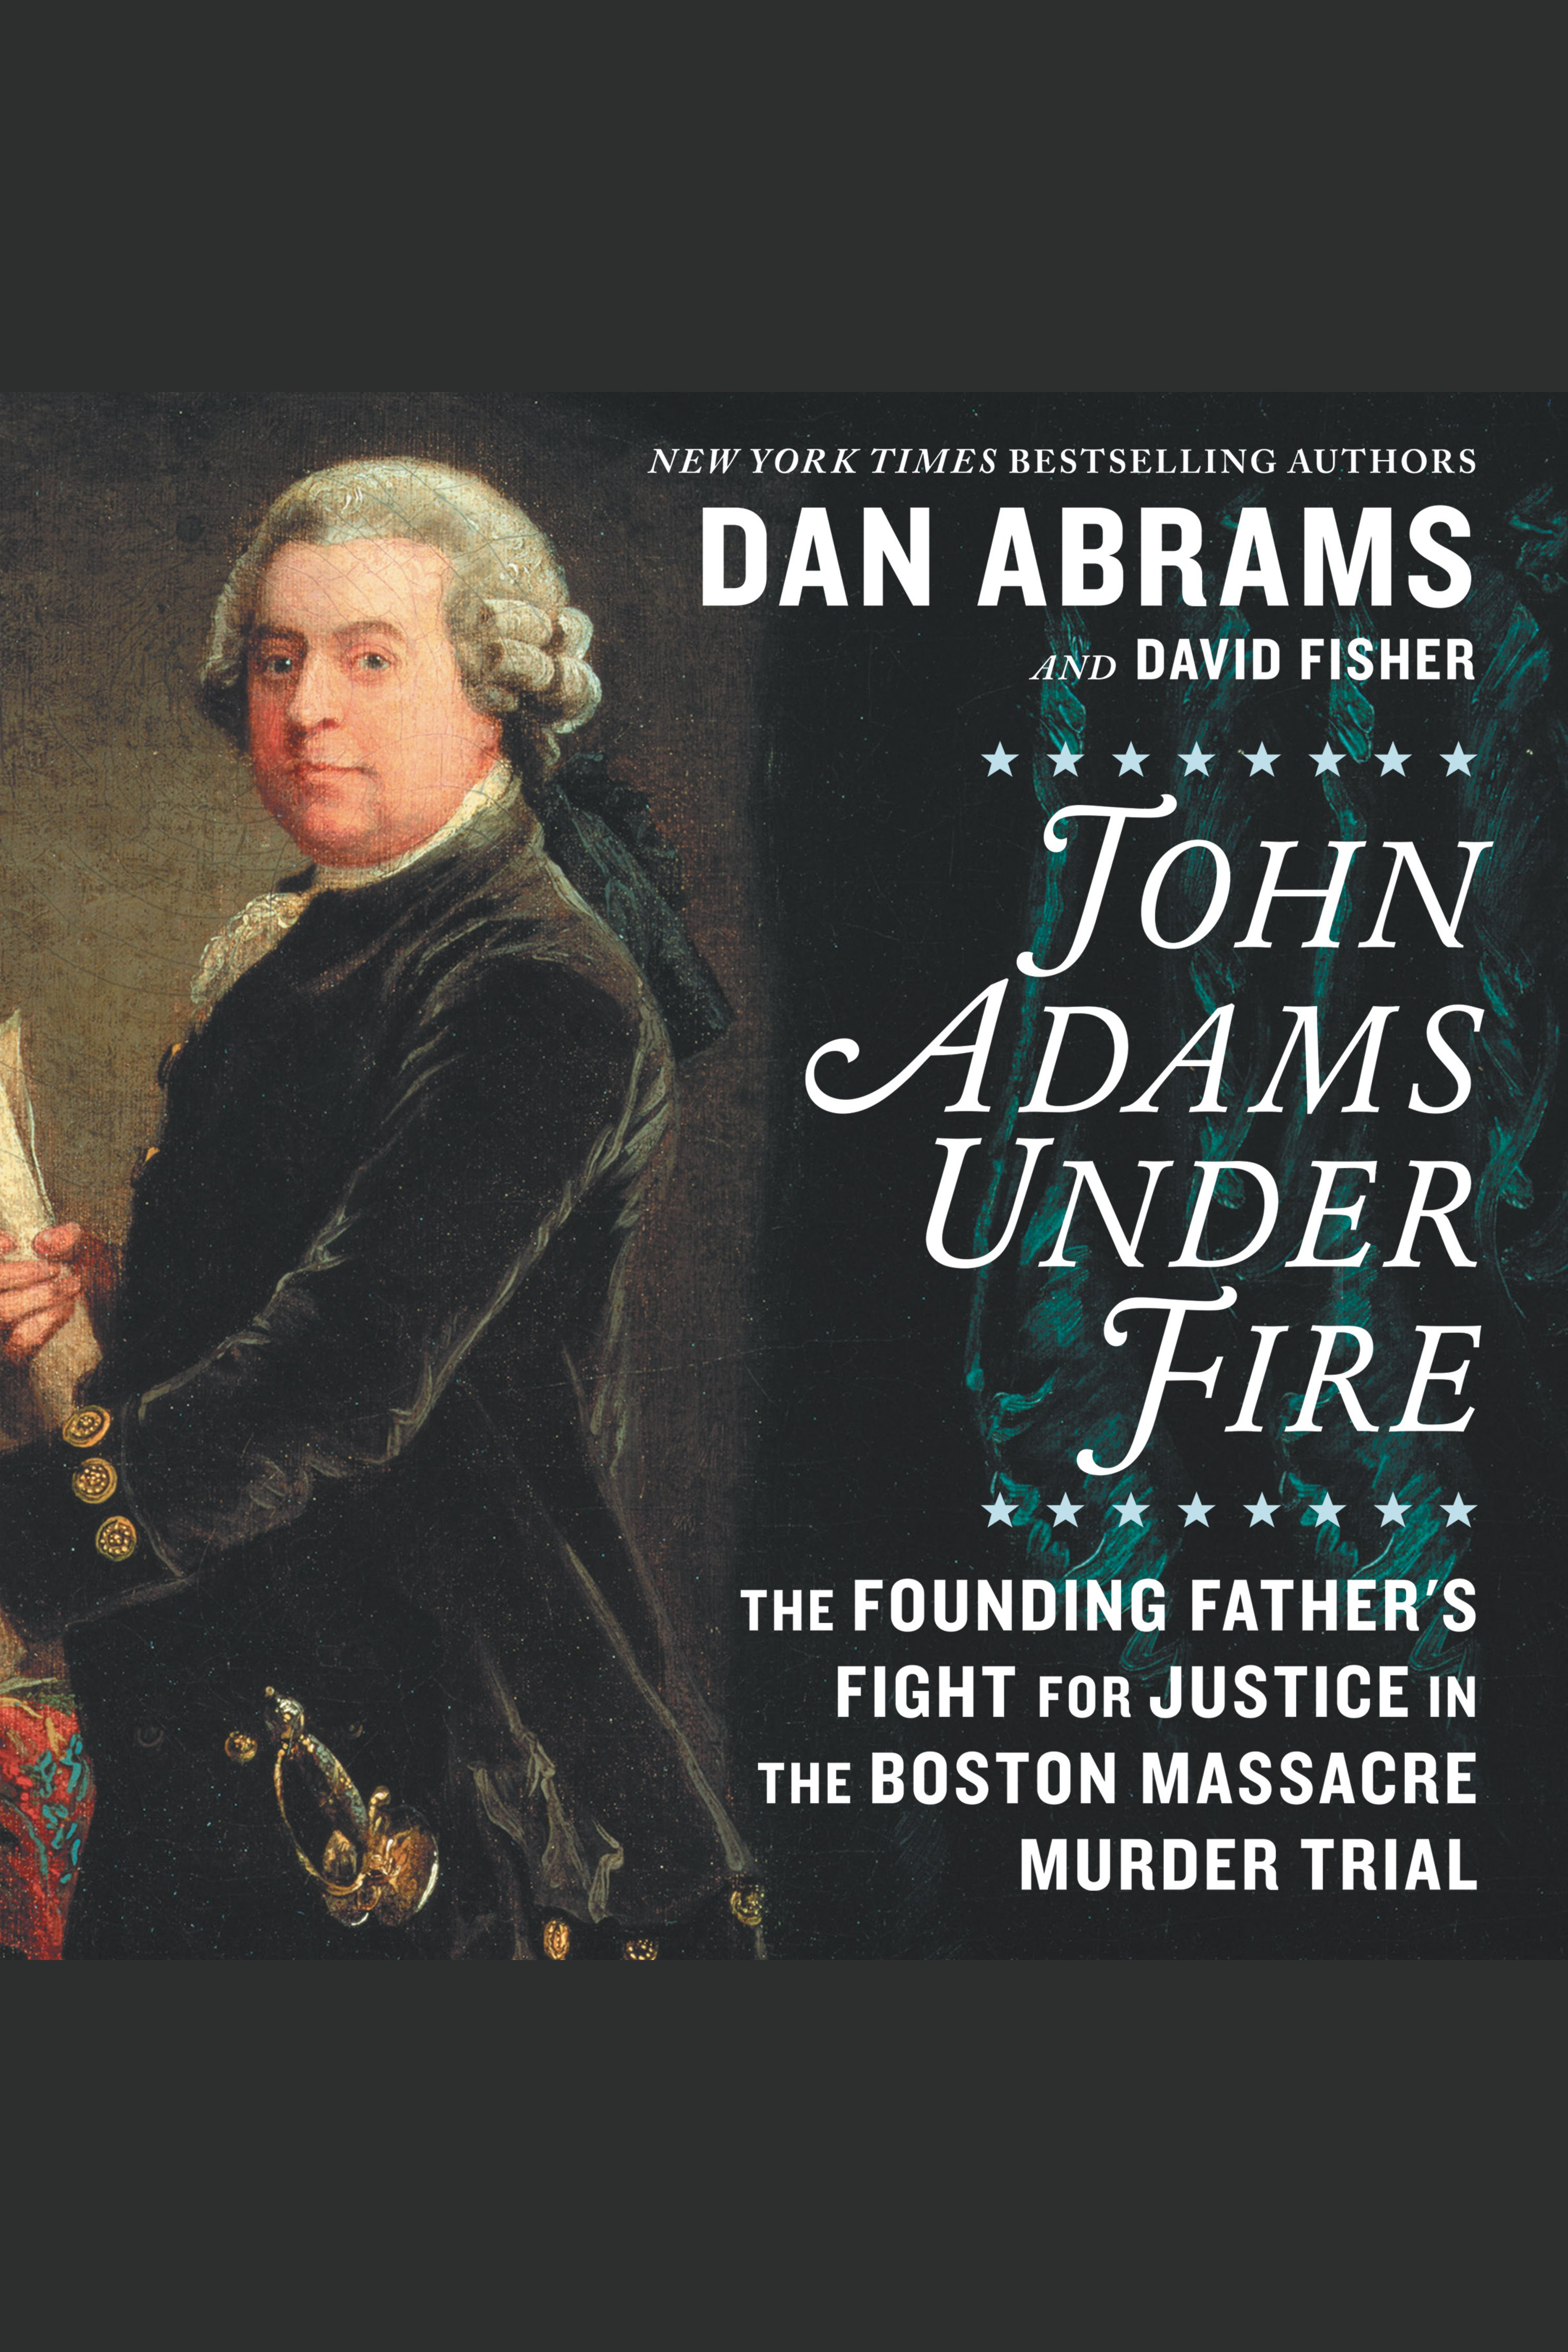 John Adams under fire the founding father's fight for justice in the Boston Massacre murder trial cover image